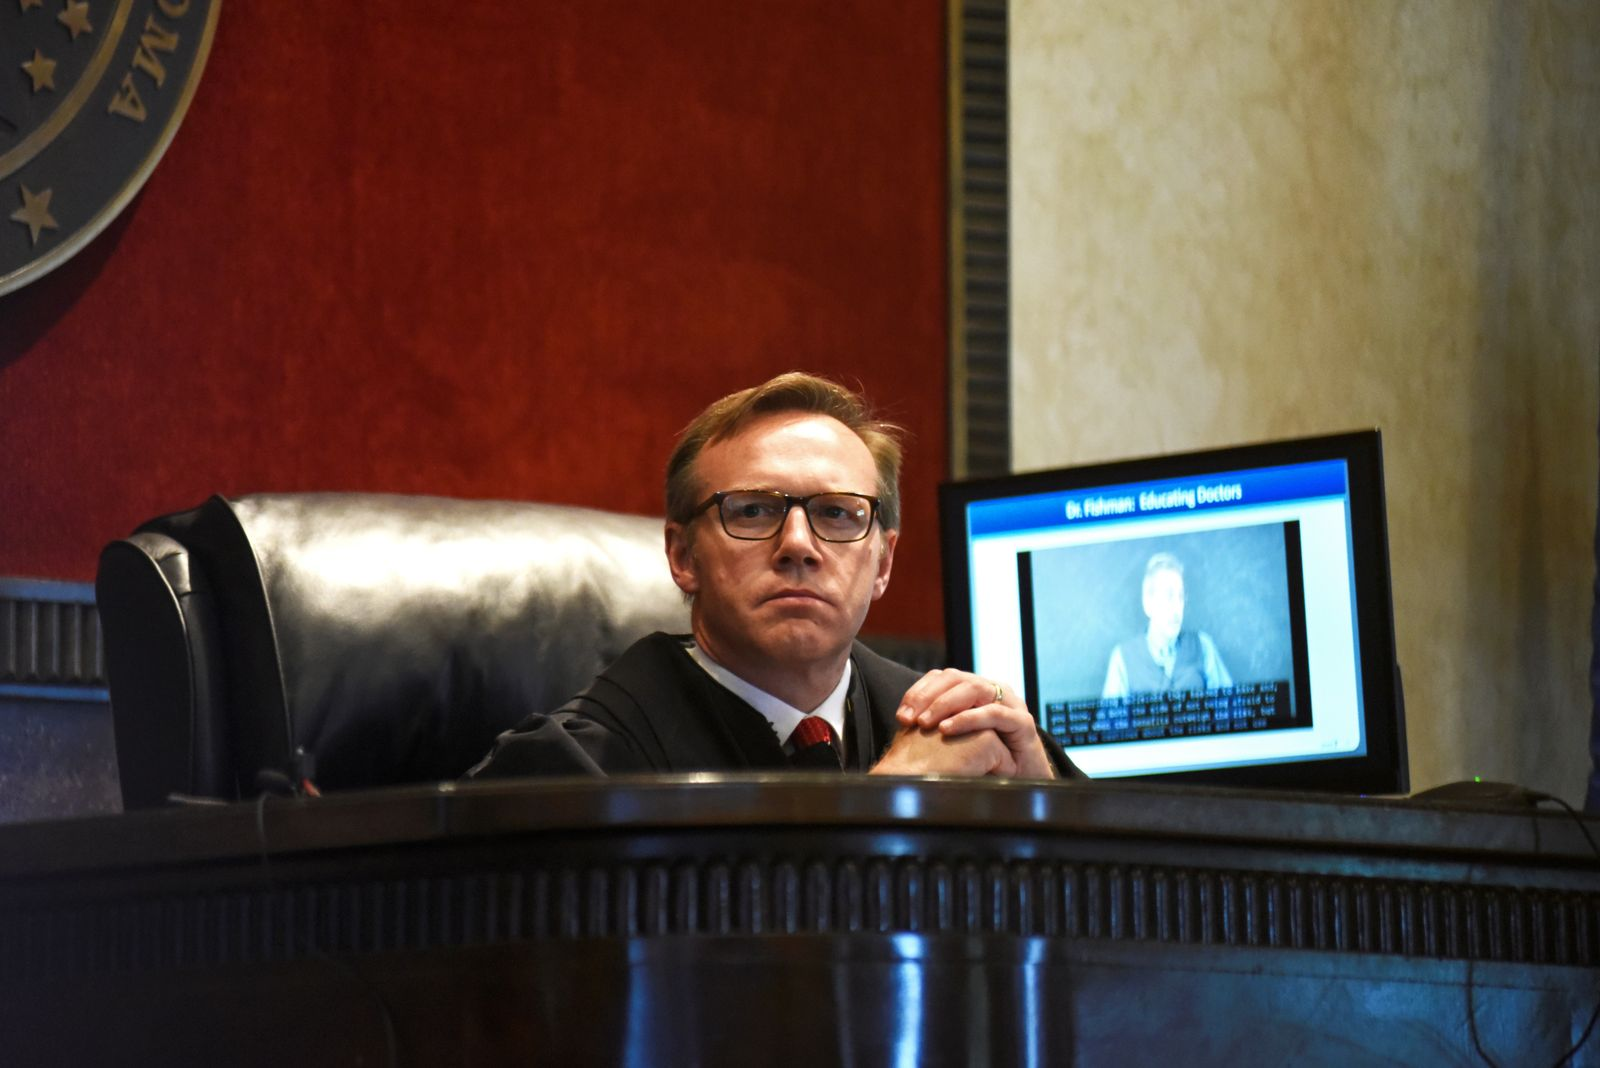 Judge Thad Balkman listens to a piece of evidence on the first day of a trial of Johnson & Johnson in Norman